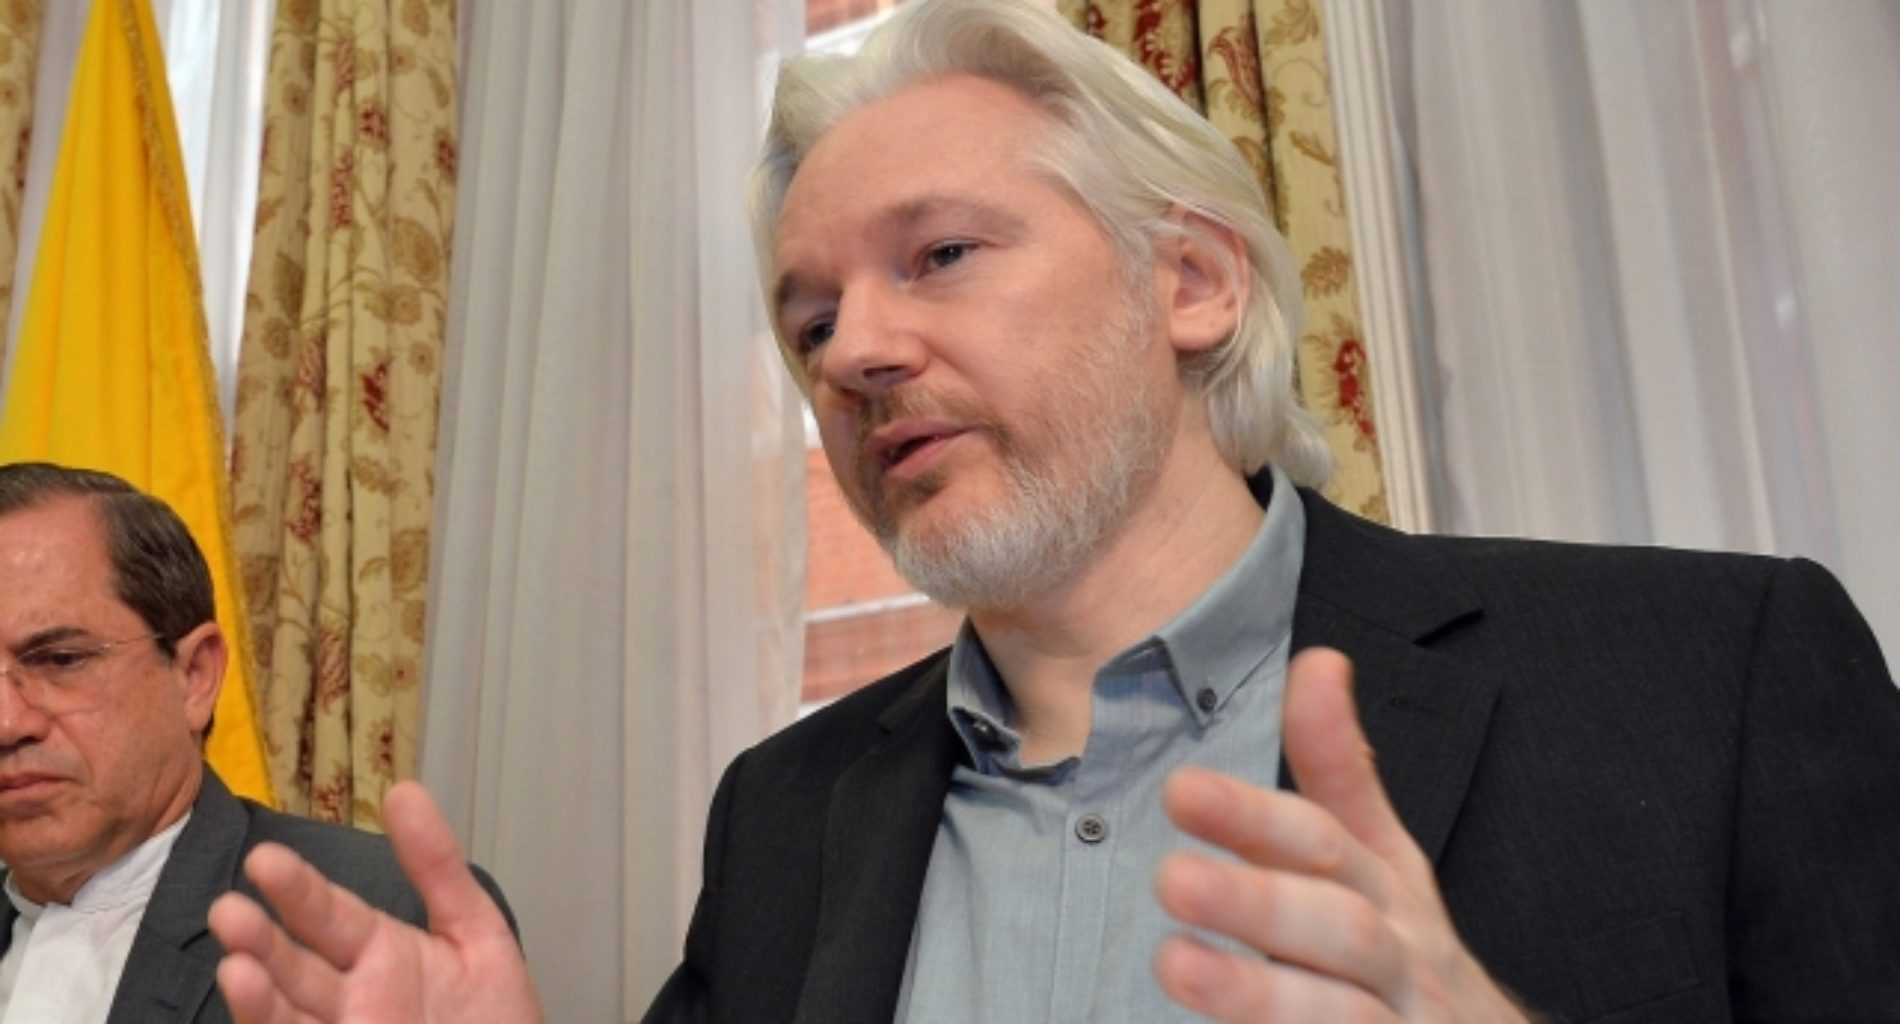 WikiLeaks exposes the private lives of people in Saudi Arabia in 'reckless' mass data dump